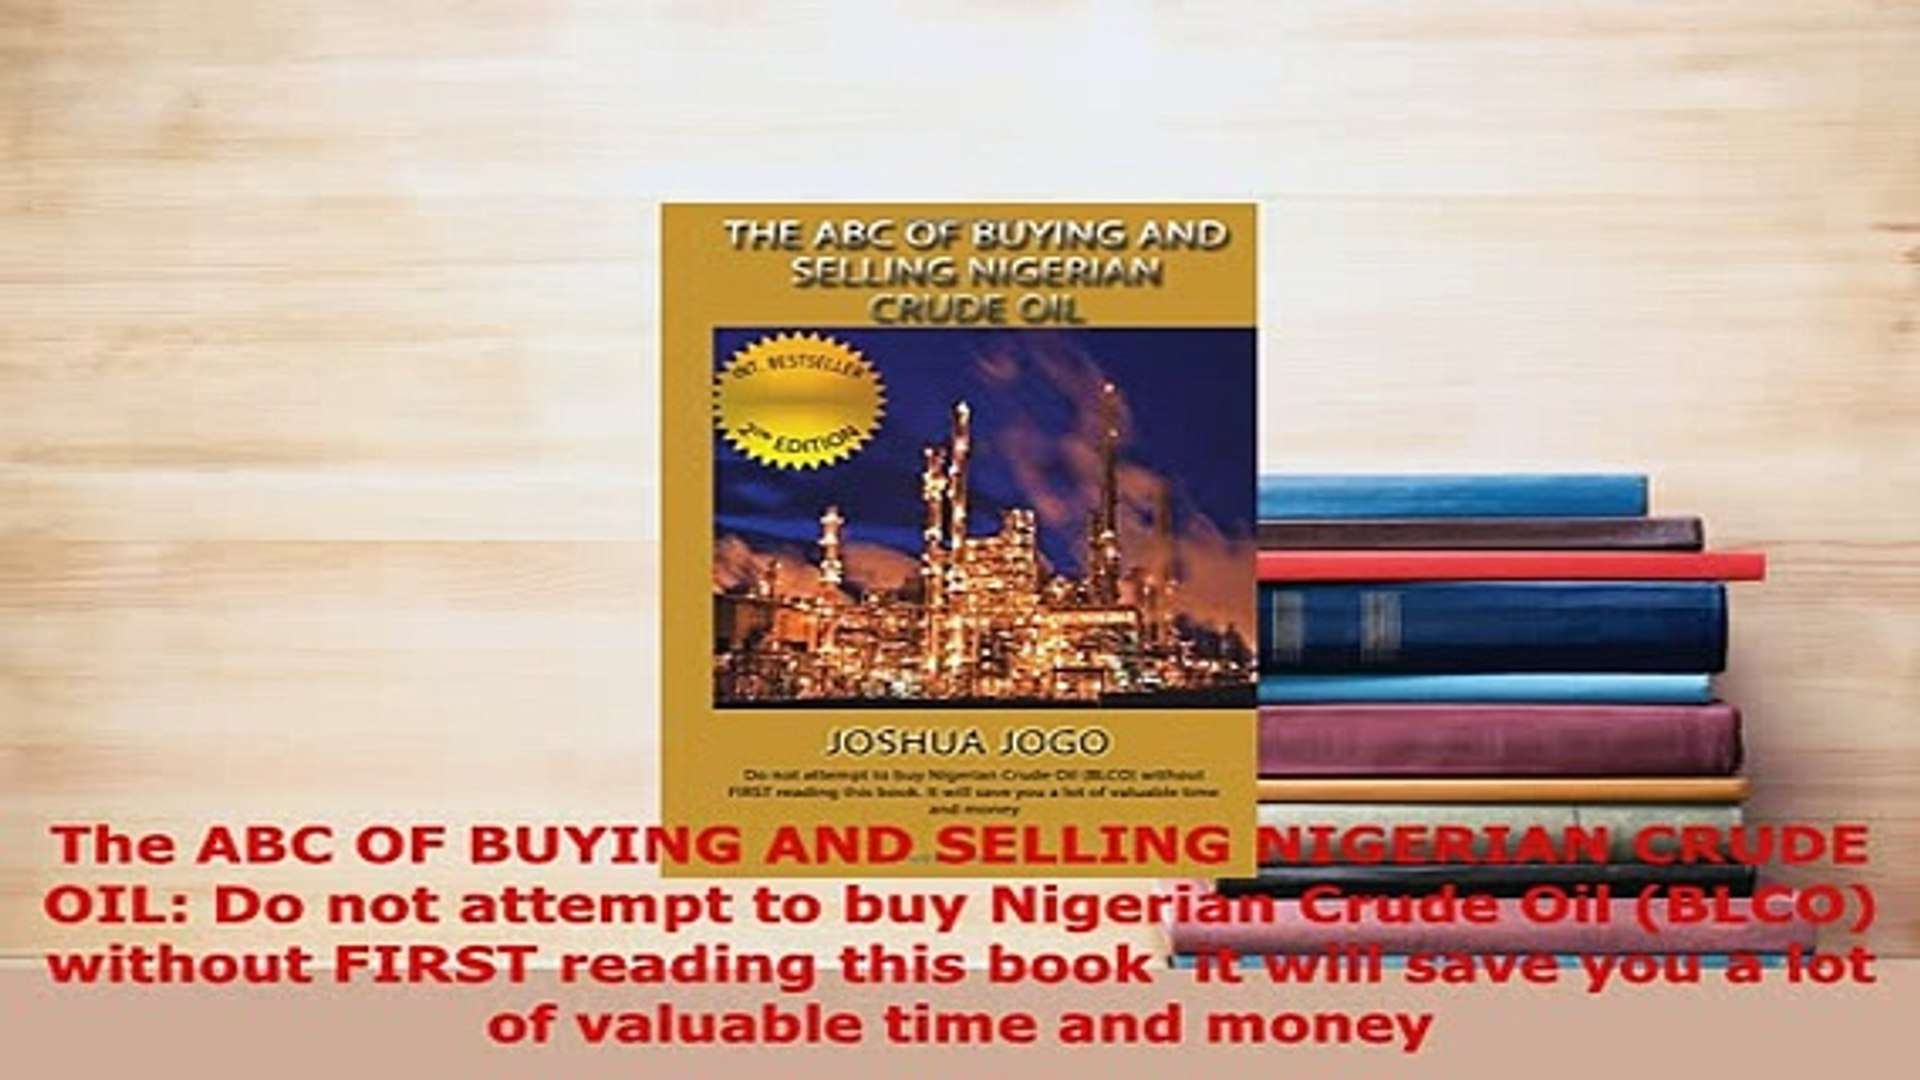 Download  The ABC OF BUYING AND SELLING NIGERIAN CRUDE OIL Do not attempt to buy Nigerian Crude Oil